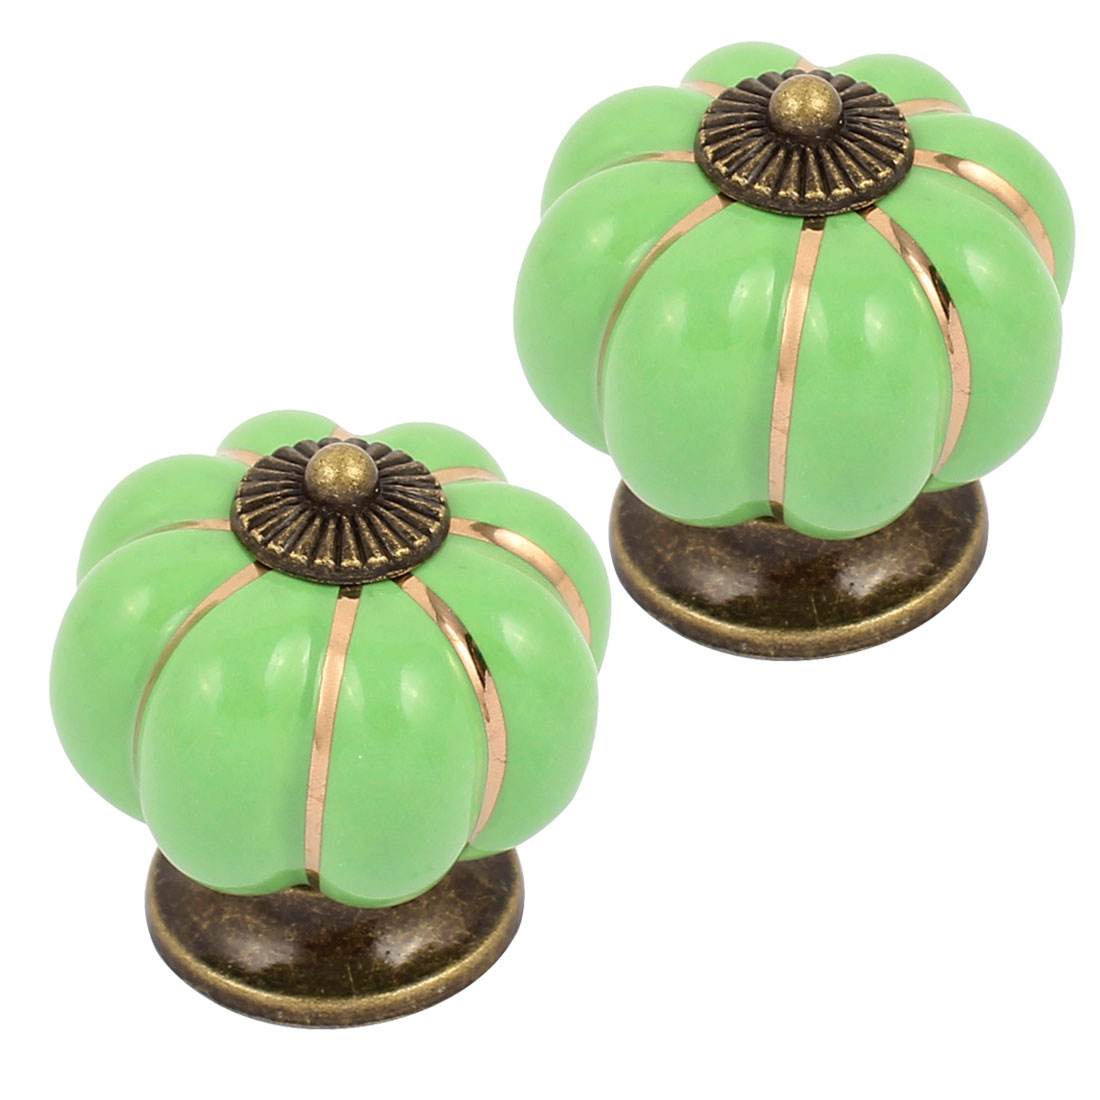 Cabinet Wardrobe Drawer Door Pull Pumpkin Ceramic Knobs Handle Green 2pcs